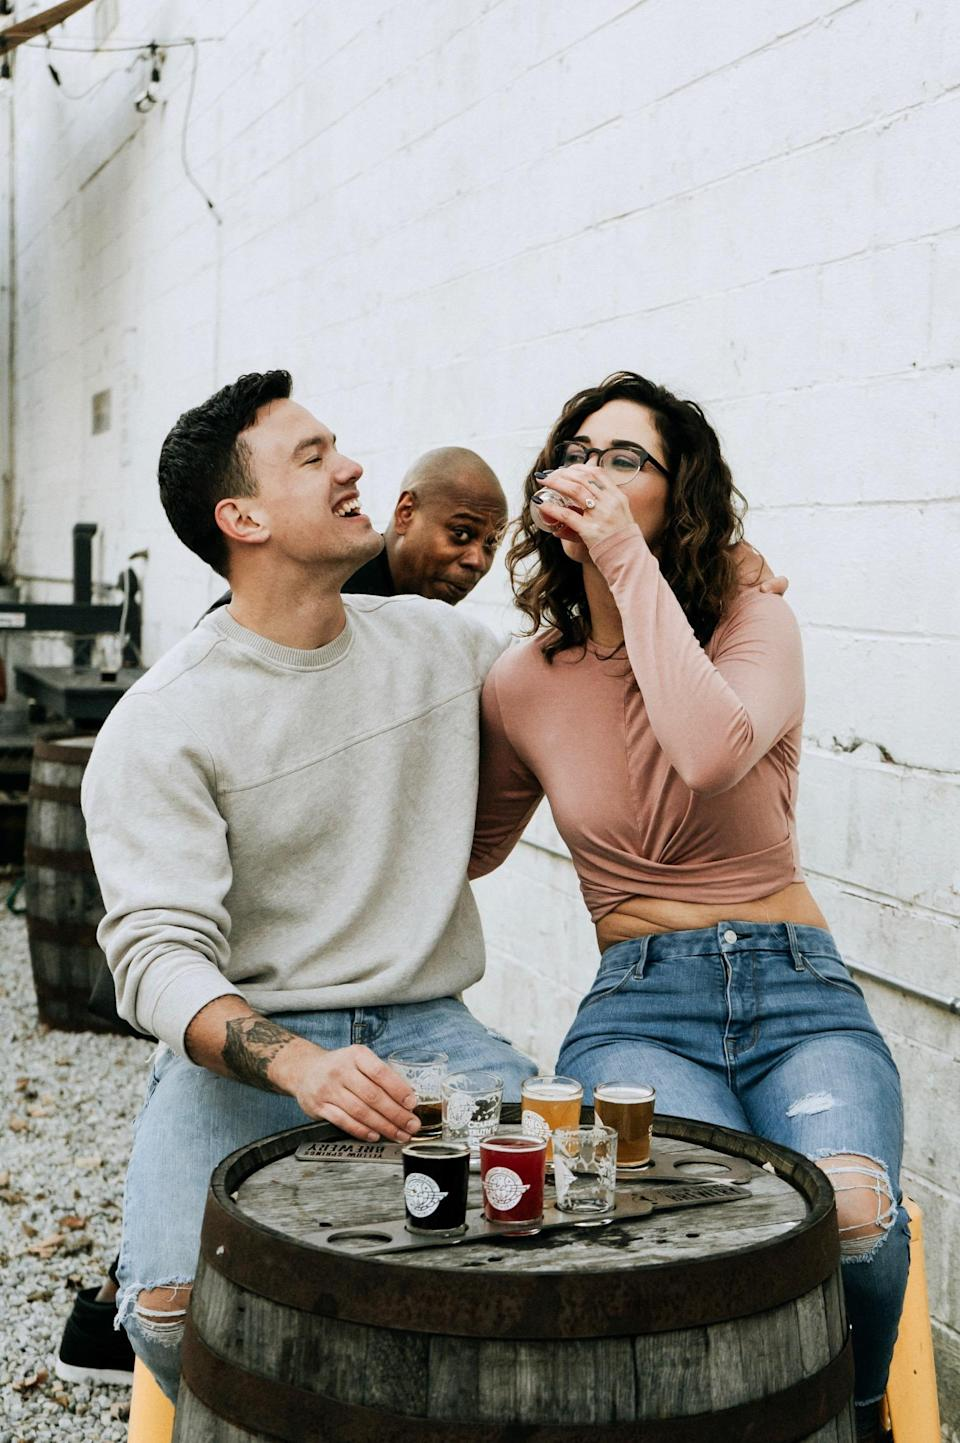 Newly engaged couple Thomas Saunders and Emily Eldridge, with a special appearance by Dave Chappelle. (Photo: Jaycee Marie Photography)